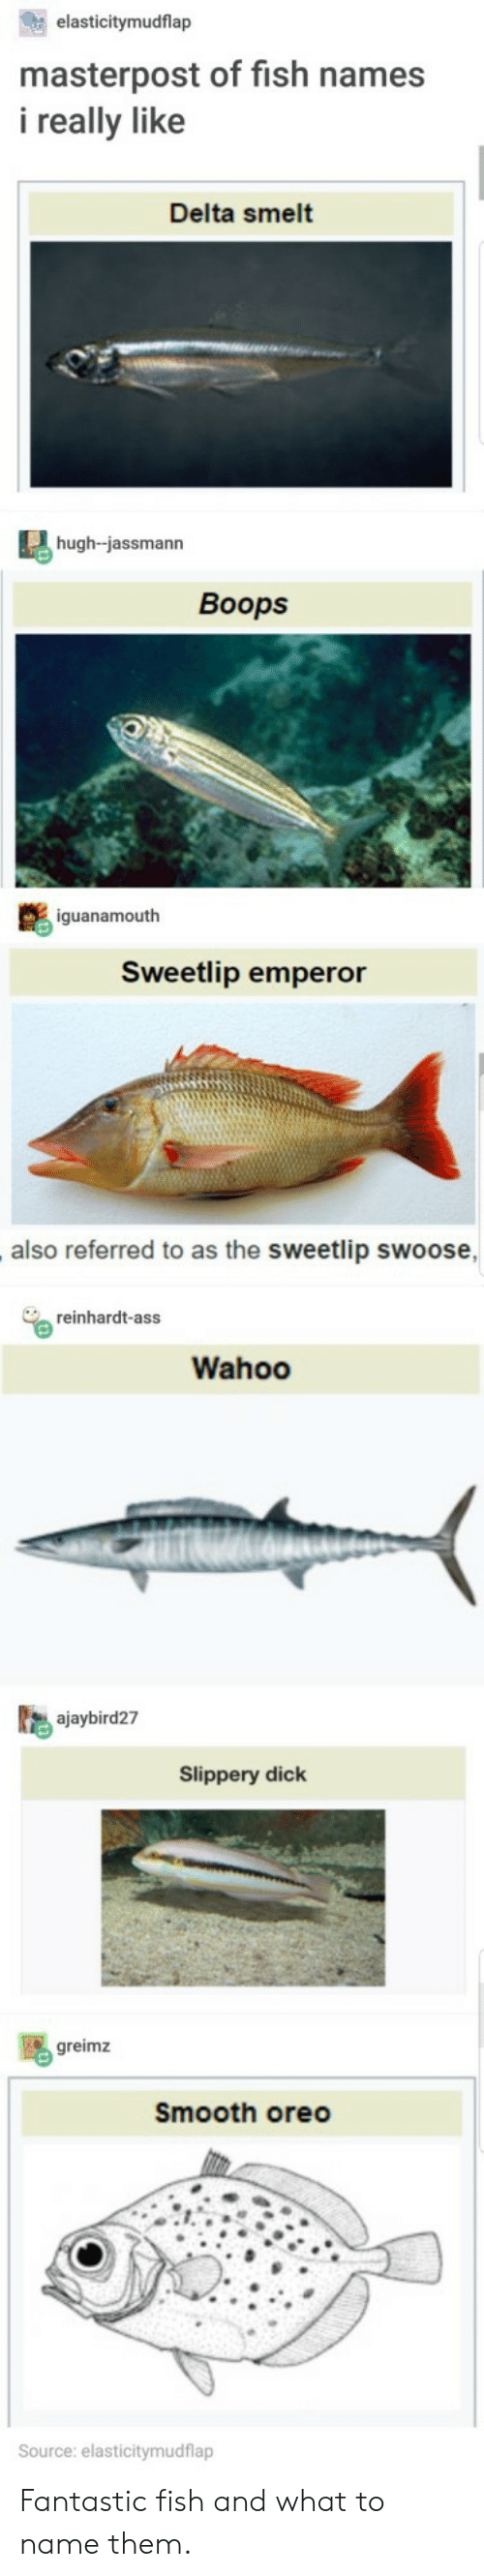 Reinhardt: elasticitymudflap  masterpost of fish names  i really like  Delta smelt  hugh-jassmann  Boops  iguanamouth  Sweetlip emperor  also referred to as the sweetlip swoose  reinhardt-ass  Wahoo  ajaybird27  Slippery dick  greimz  Smooth oreo  ource: elasticitymudflap Fantastic fish and what to name them.